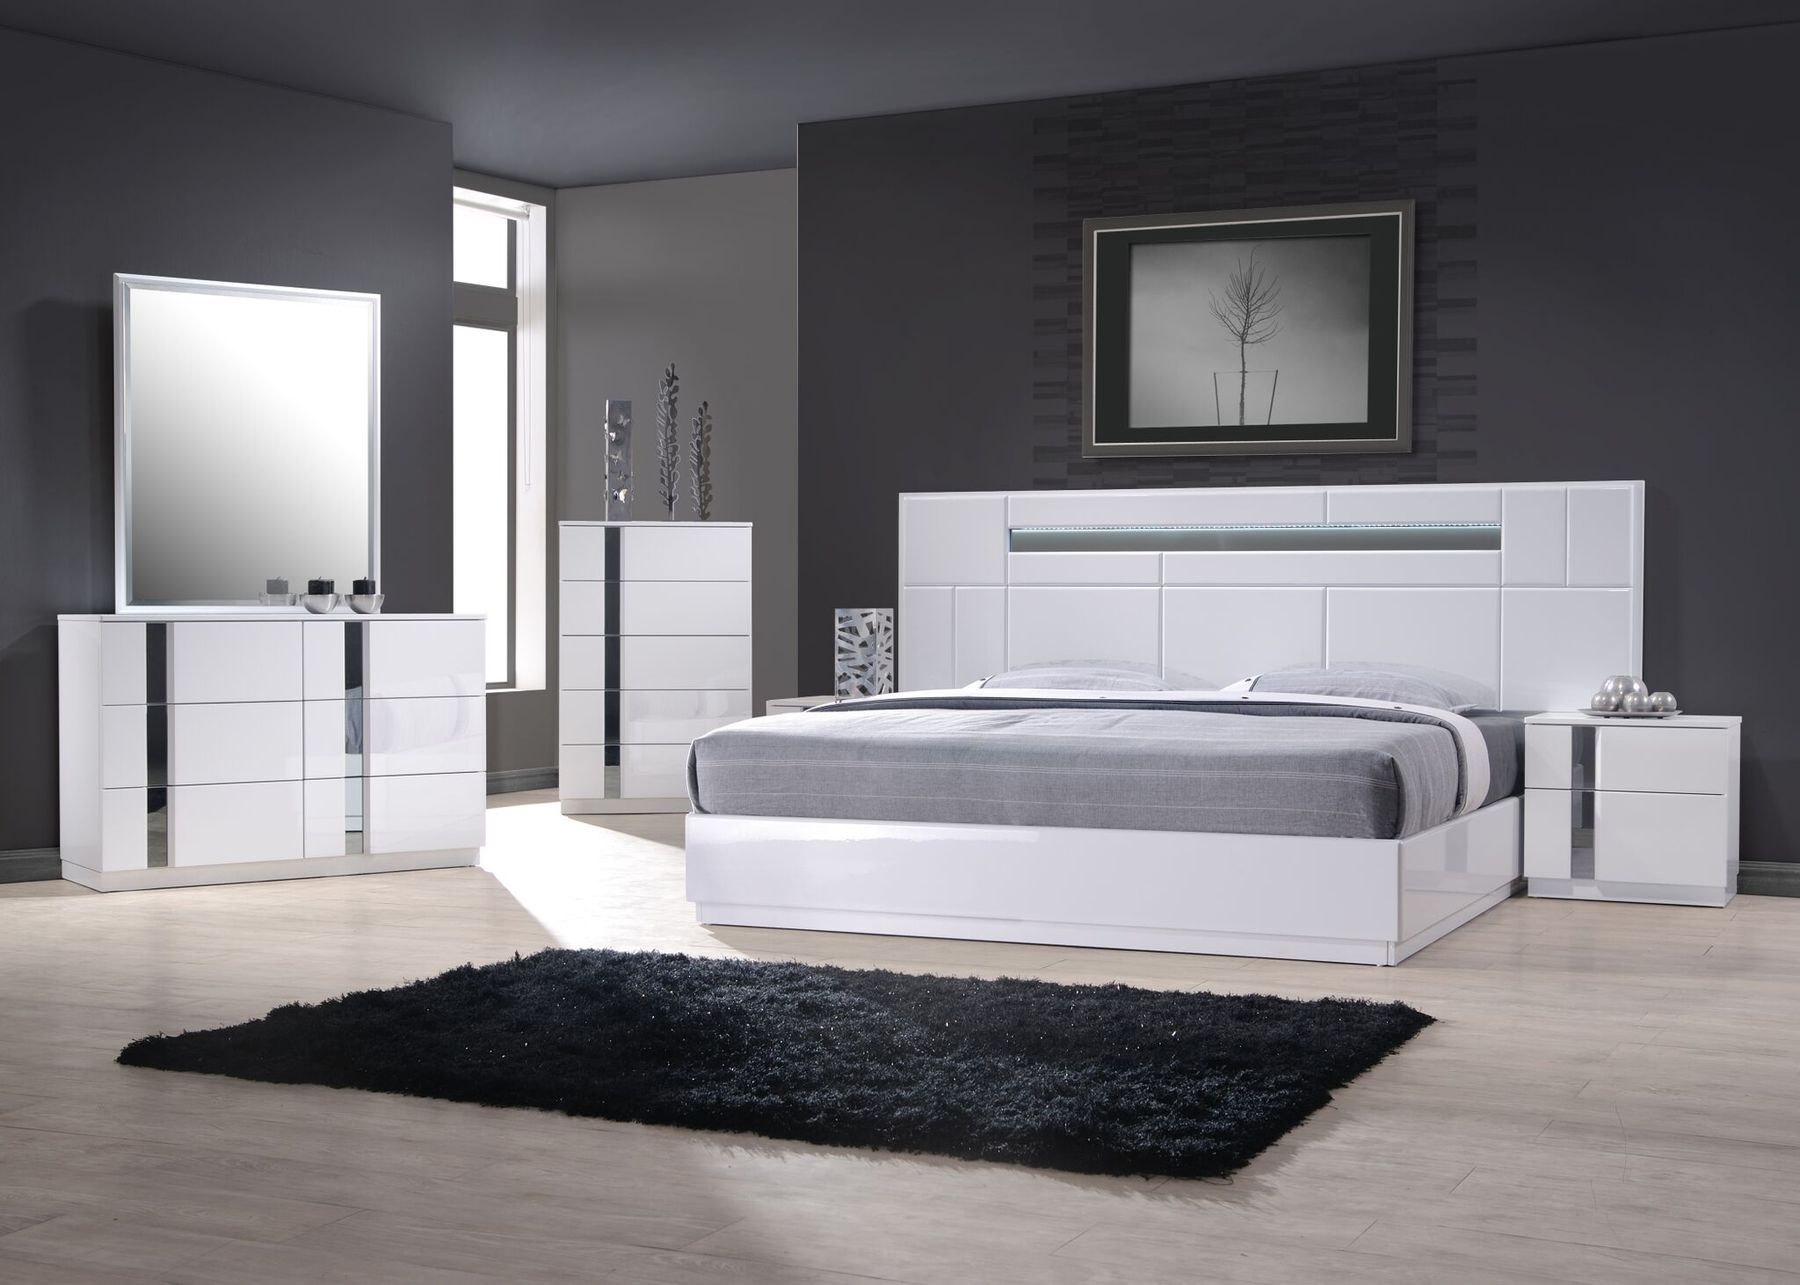 Palermo King Size Bed Contemporary Bedroom Sets Modern Bedroom Furniture King Bedroom Sets